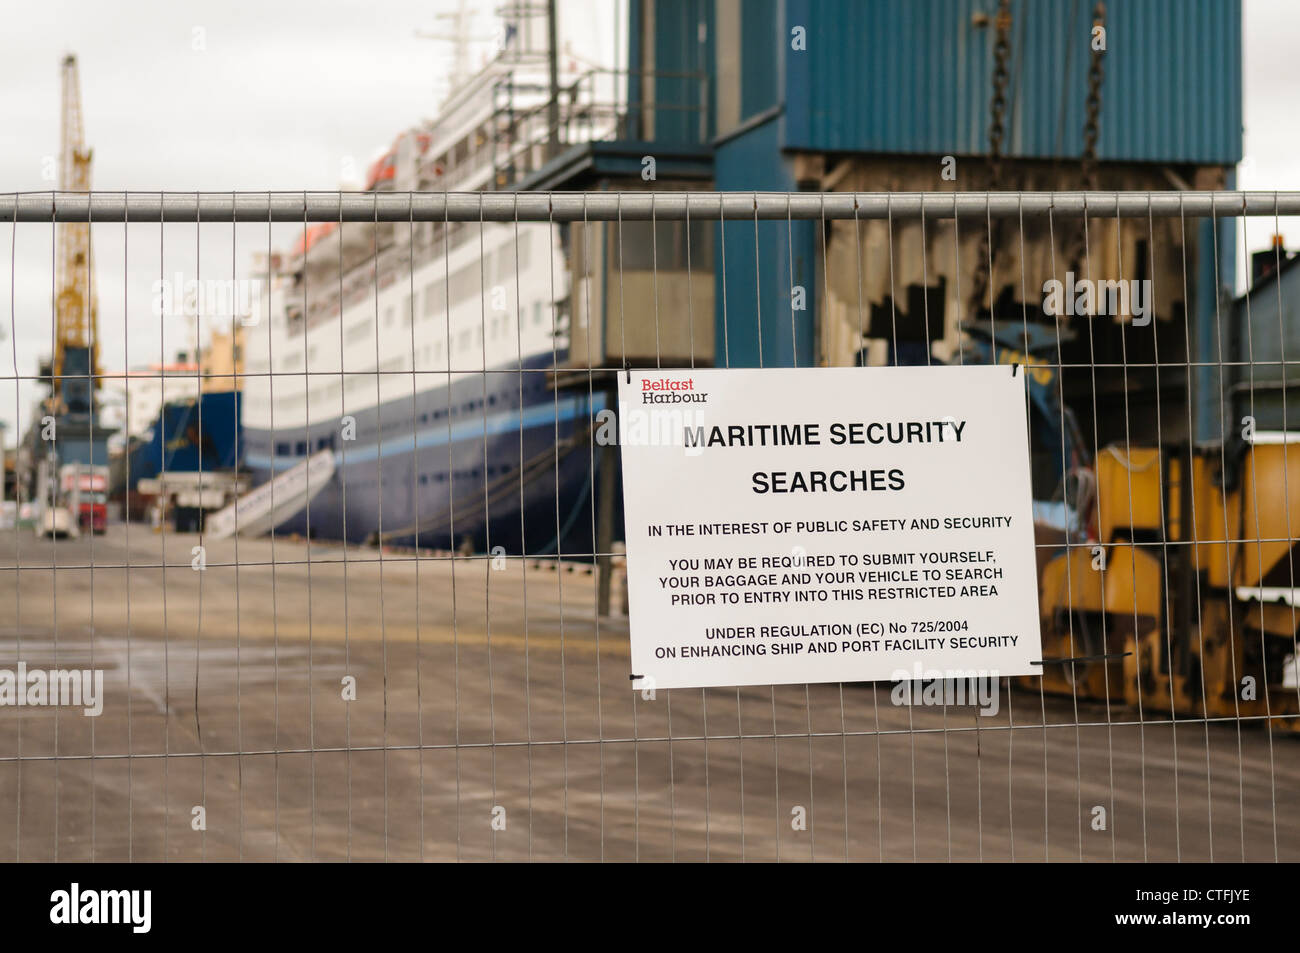 Security sign at the Port of Belfast warning about security searches - Stock Image